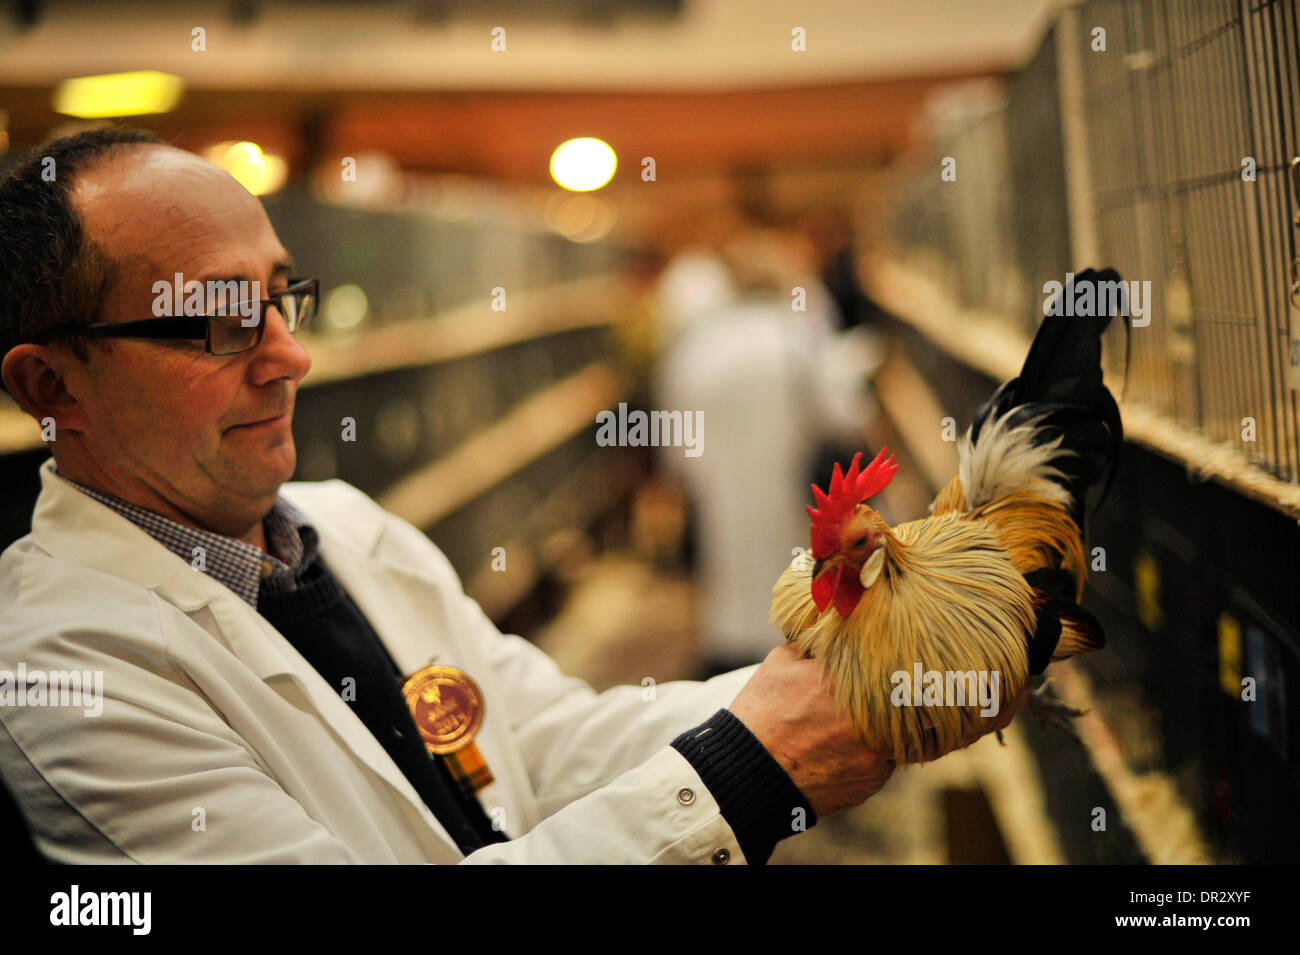 Lanark, UK. 18th January 2013, Judging takes place at the 40th Scottish National Poultry Show which is sponsored by Fancy Fowl Magazine at Lanark Agricultural Centre. Credit Steven Scott Taylor / Alamy Live News - Stock Image